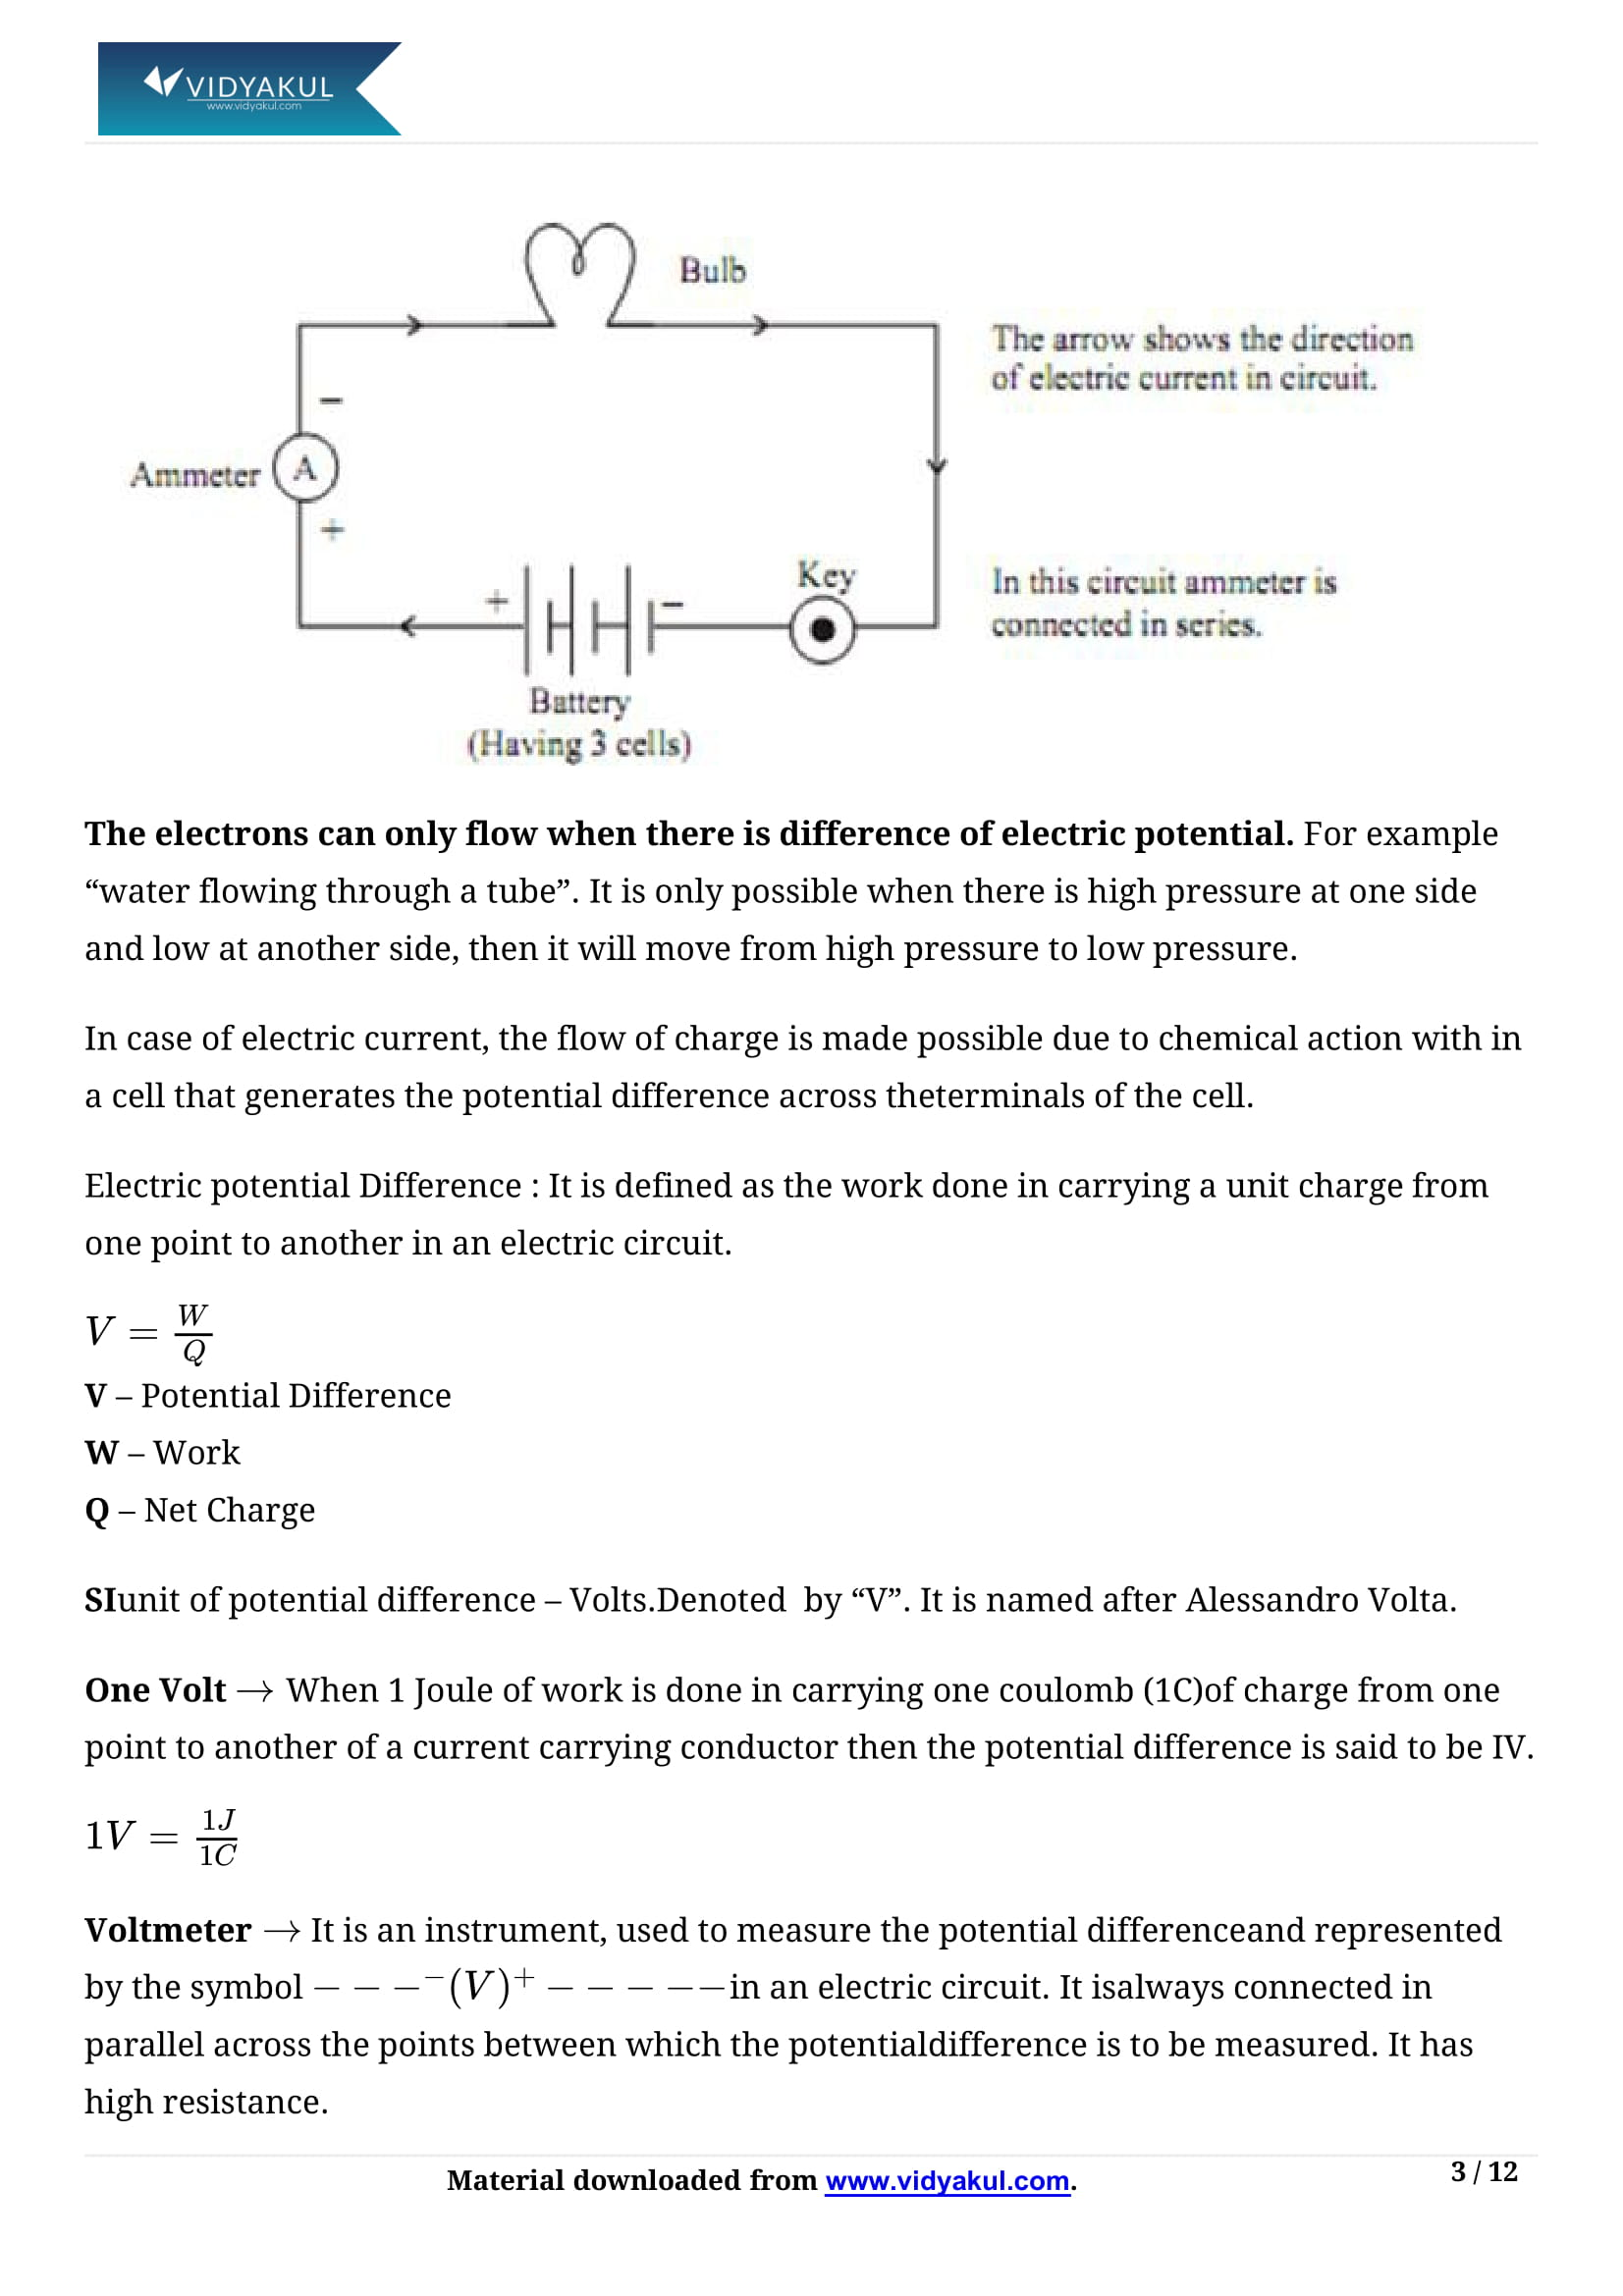 Electricity Class 10 Notes | Vidyakul